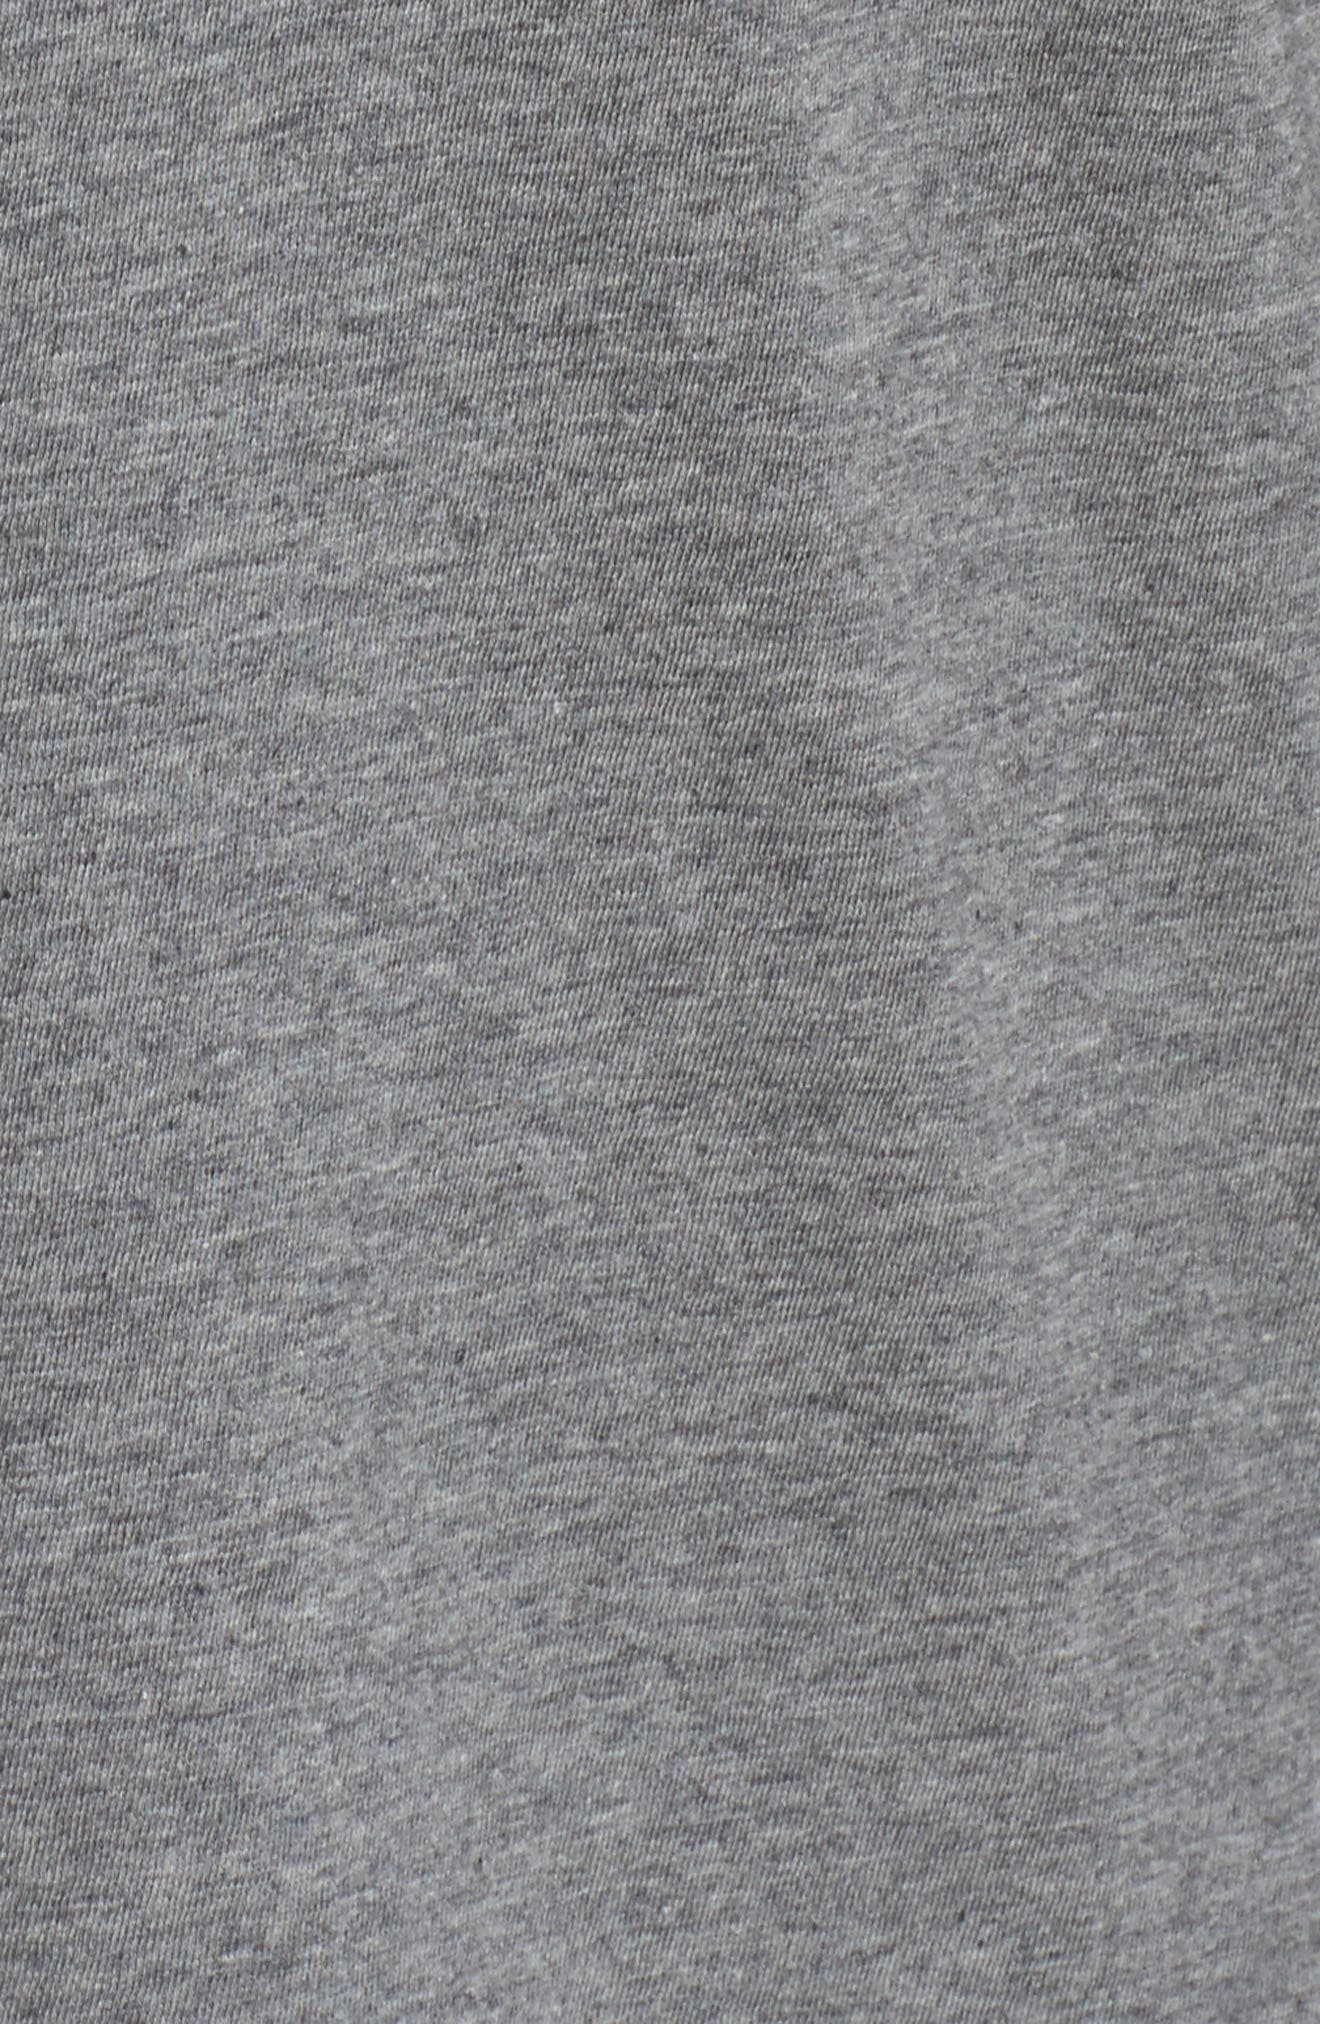 Rosé Okay Sweatshirt,                             Alternate thumbnail 6, color,                             Heather Grey